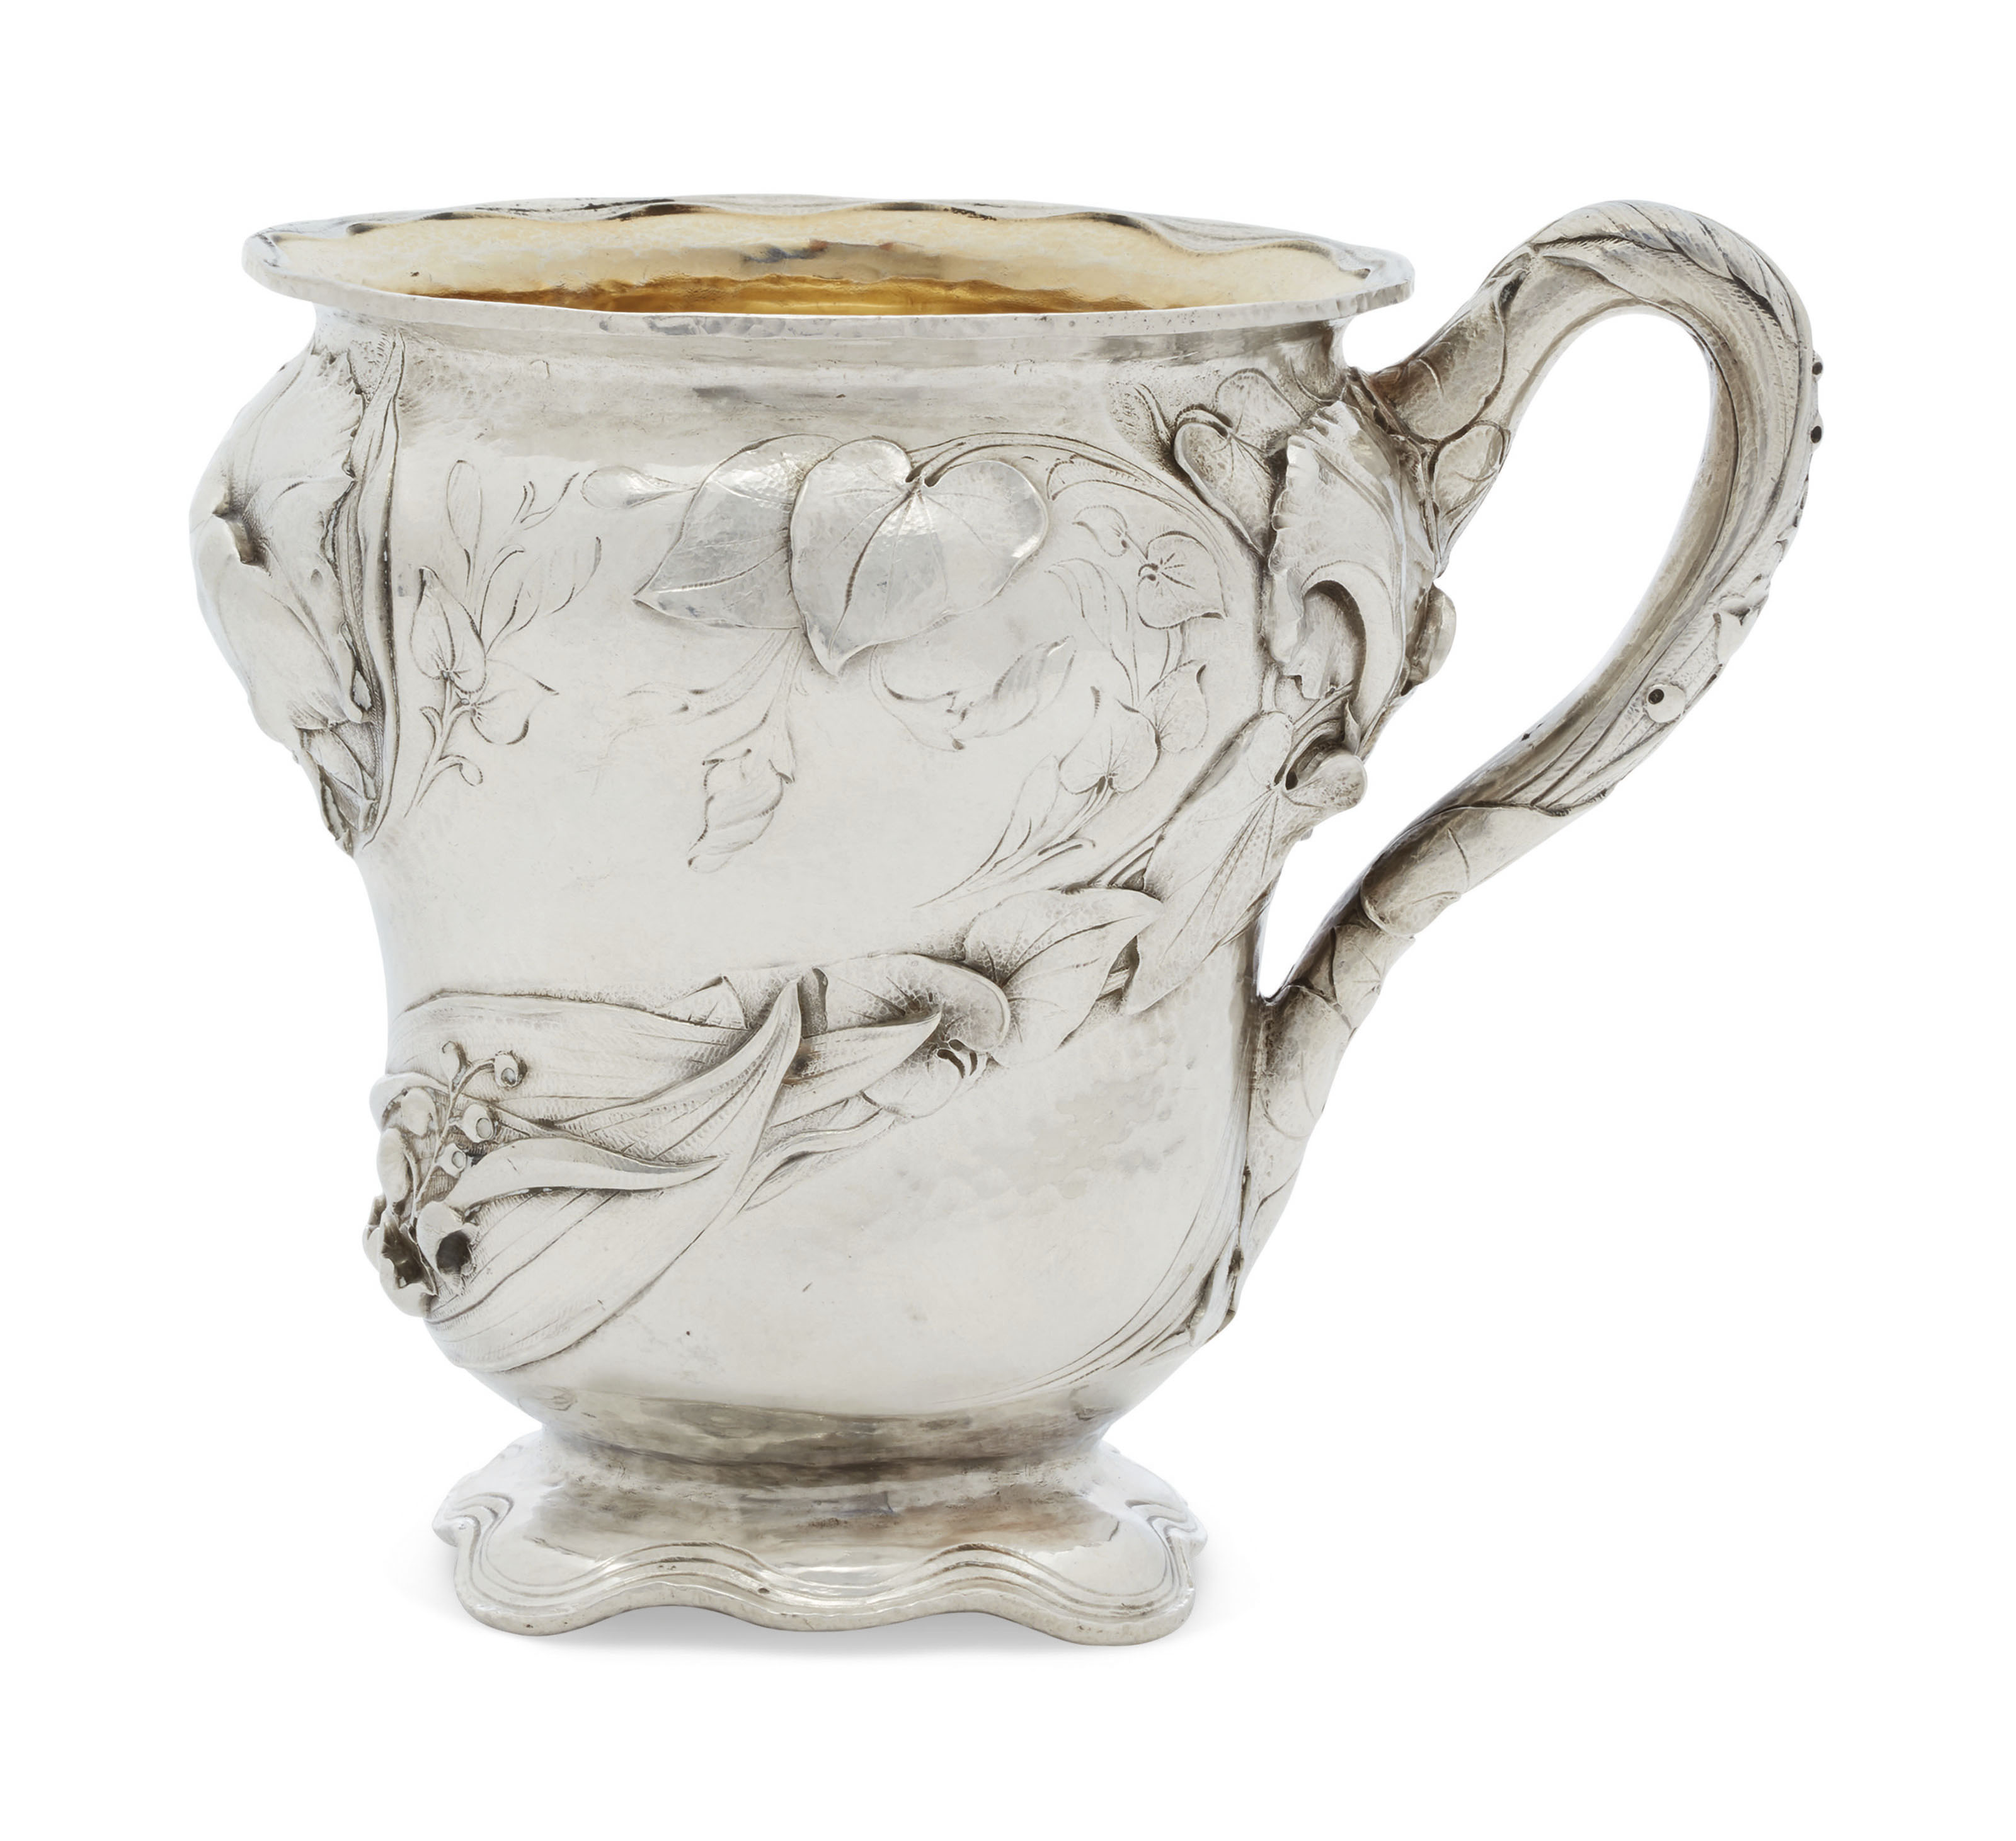 ''FIRST SPECIAL ORDER OF MARTELE'': AN AMERICAN SILVER CHILD'S CUP